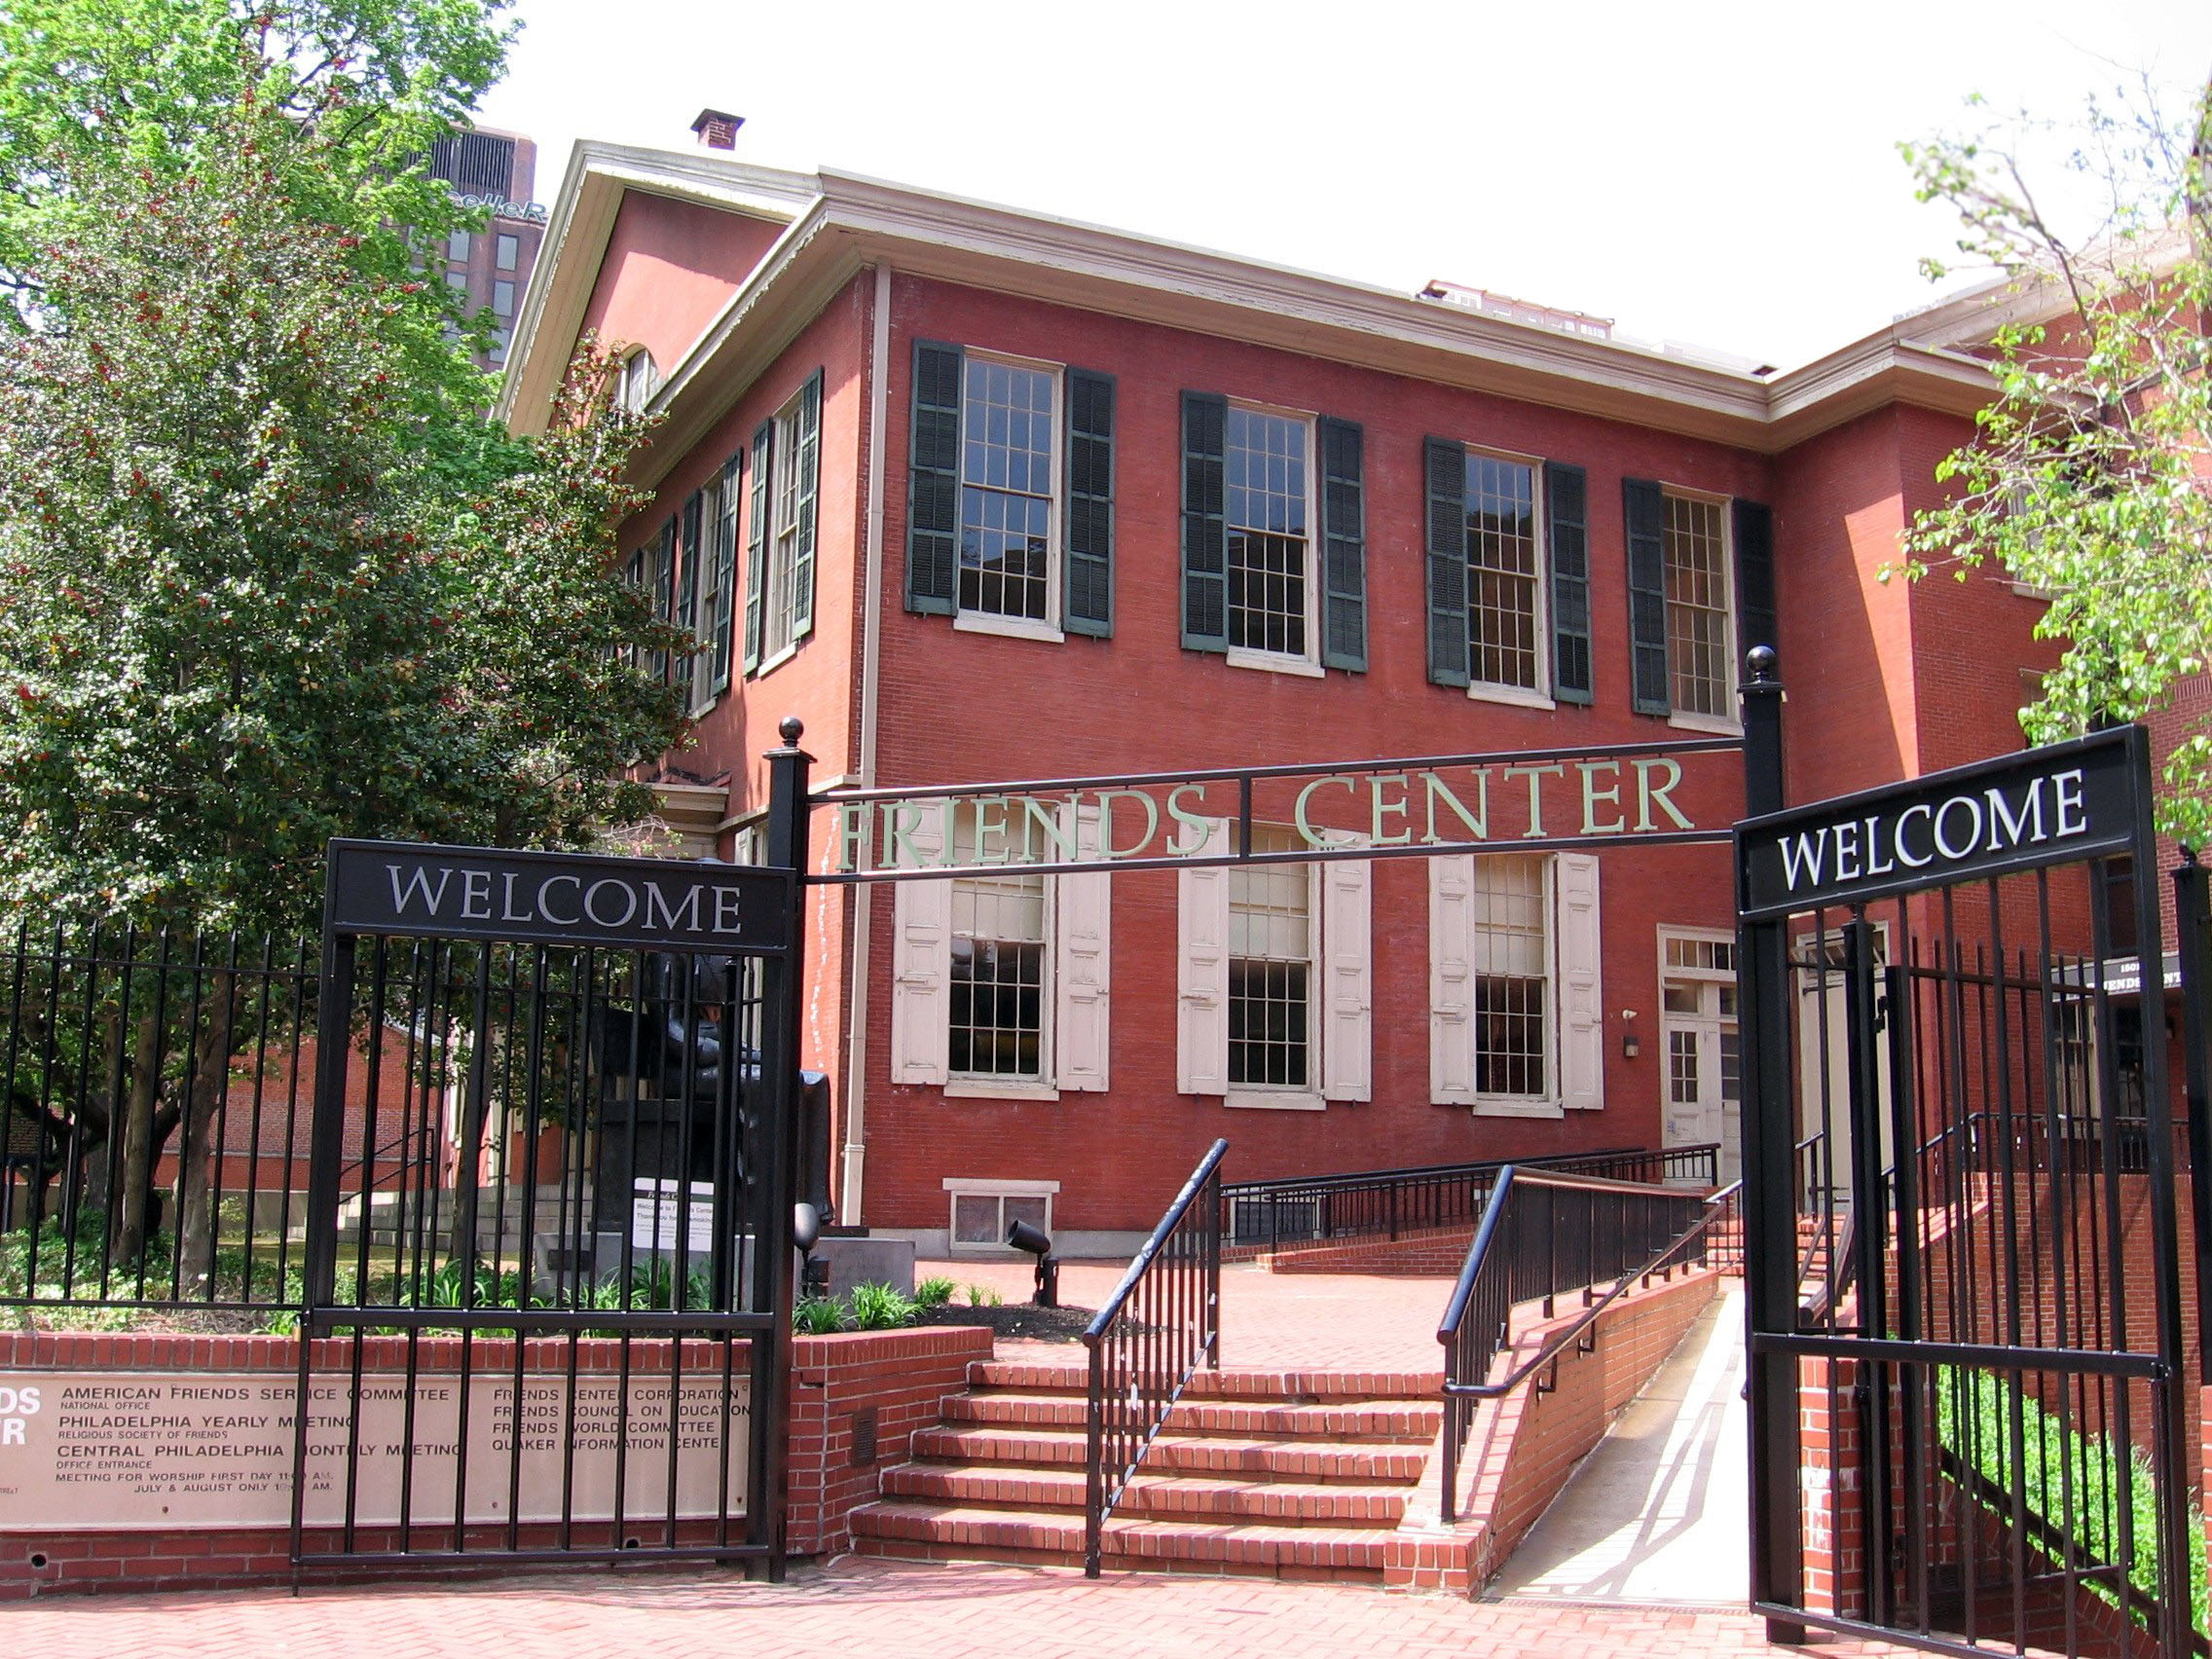 The entrance to the modern Race Street Friends Center.  The meetinghouse, built in 1856, is on the left.